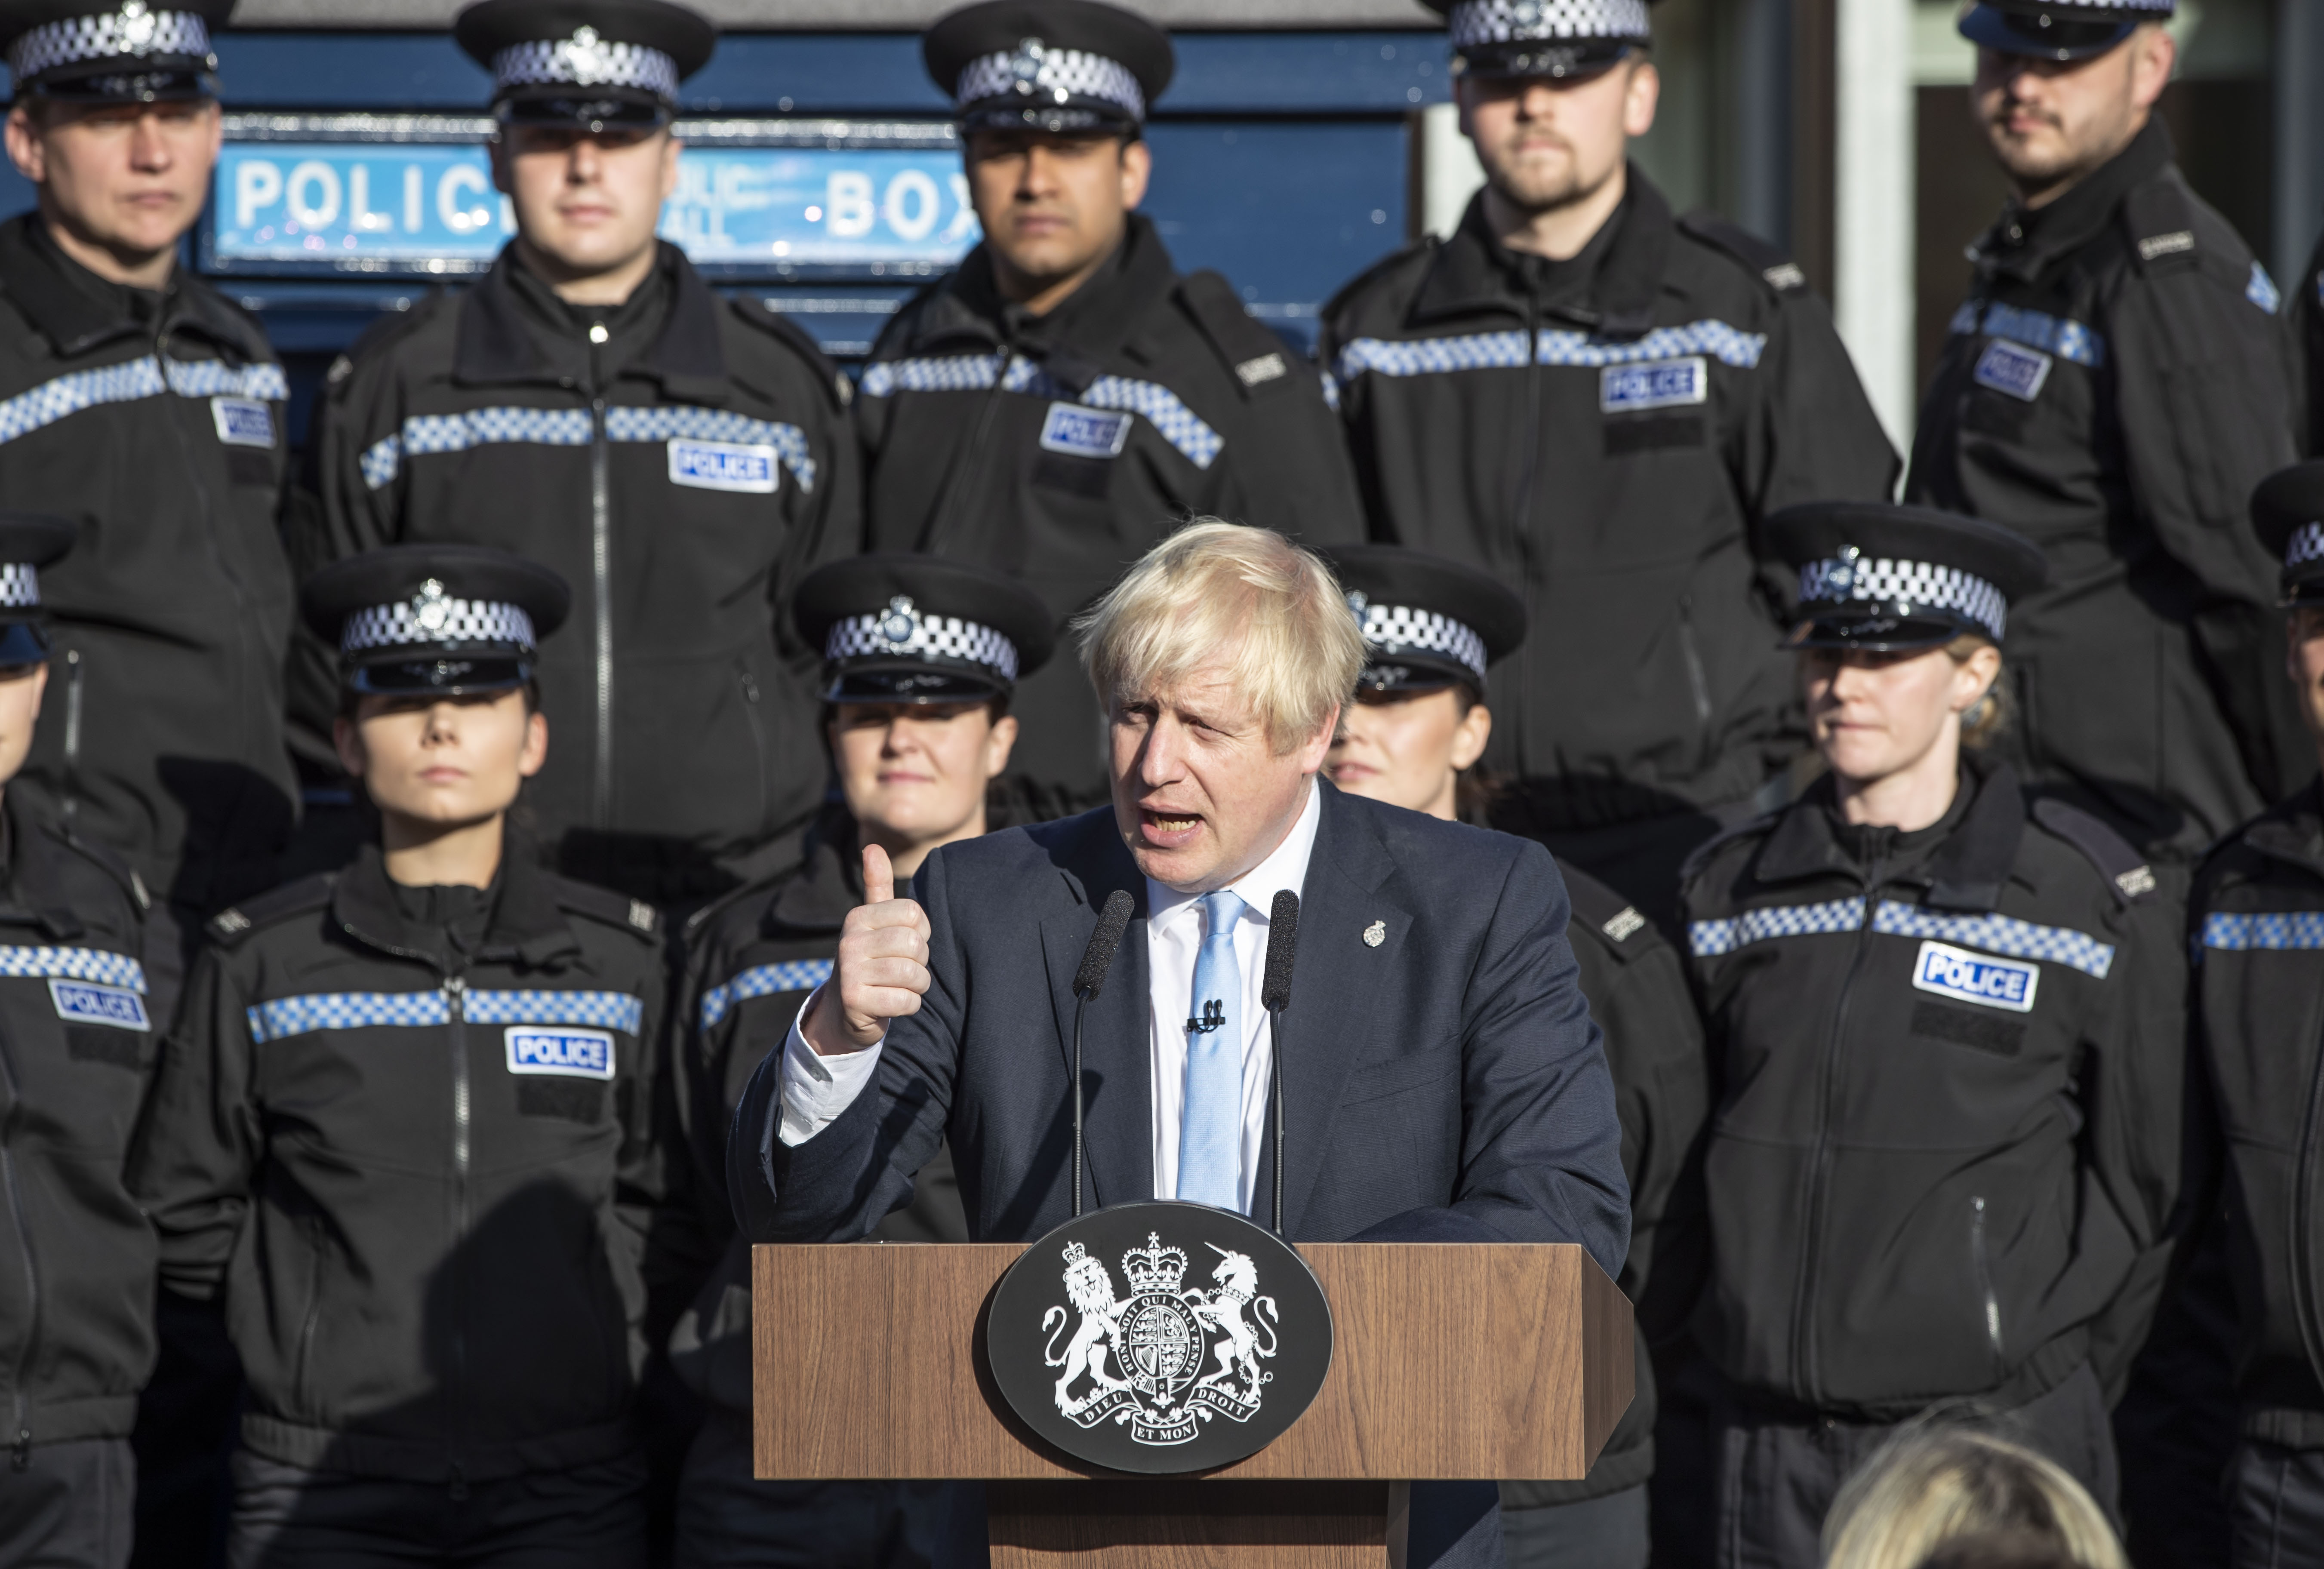 Boris Johnson standing in front of police officers